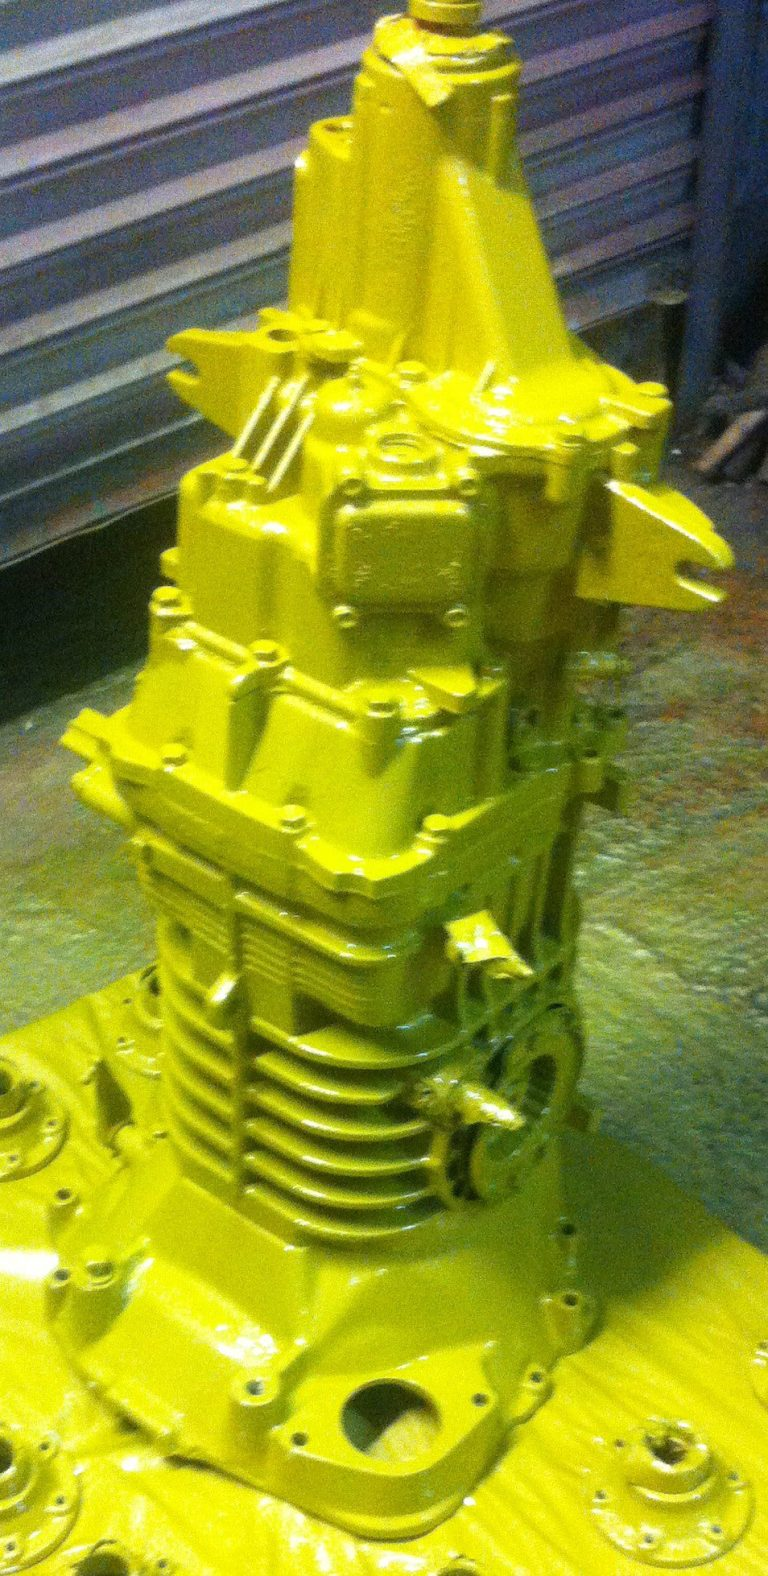 vw T3 Syncro gearbox in paint